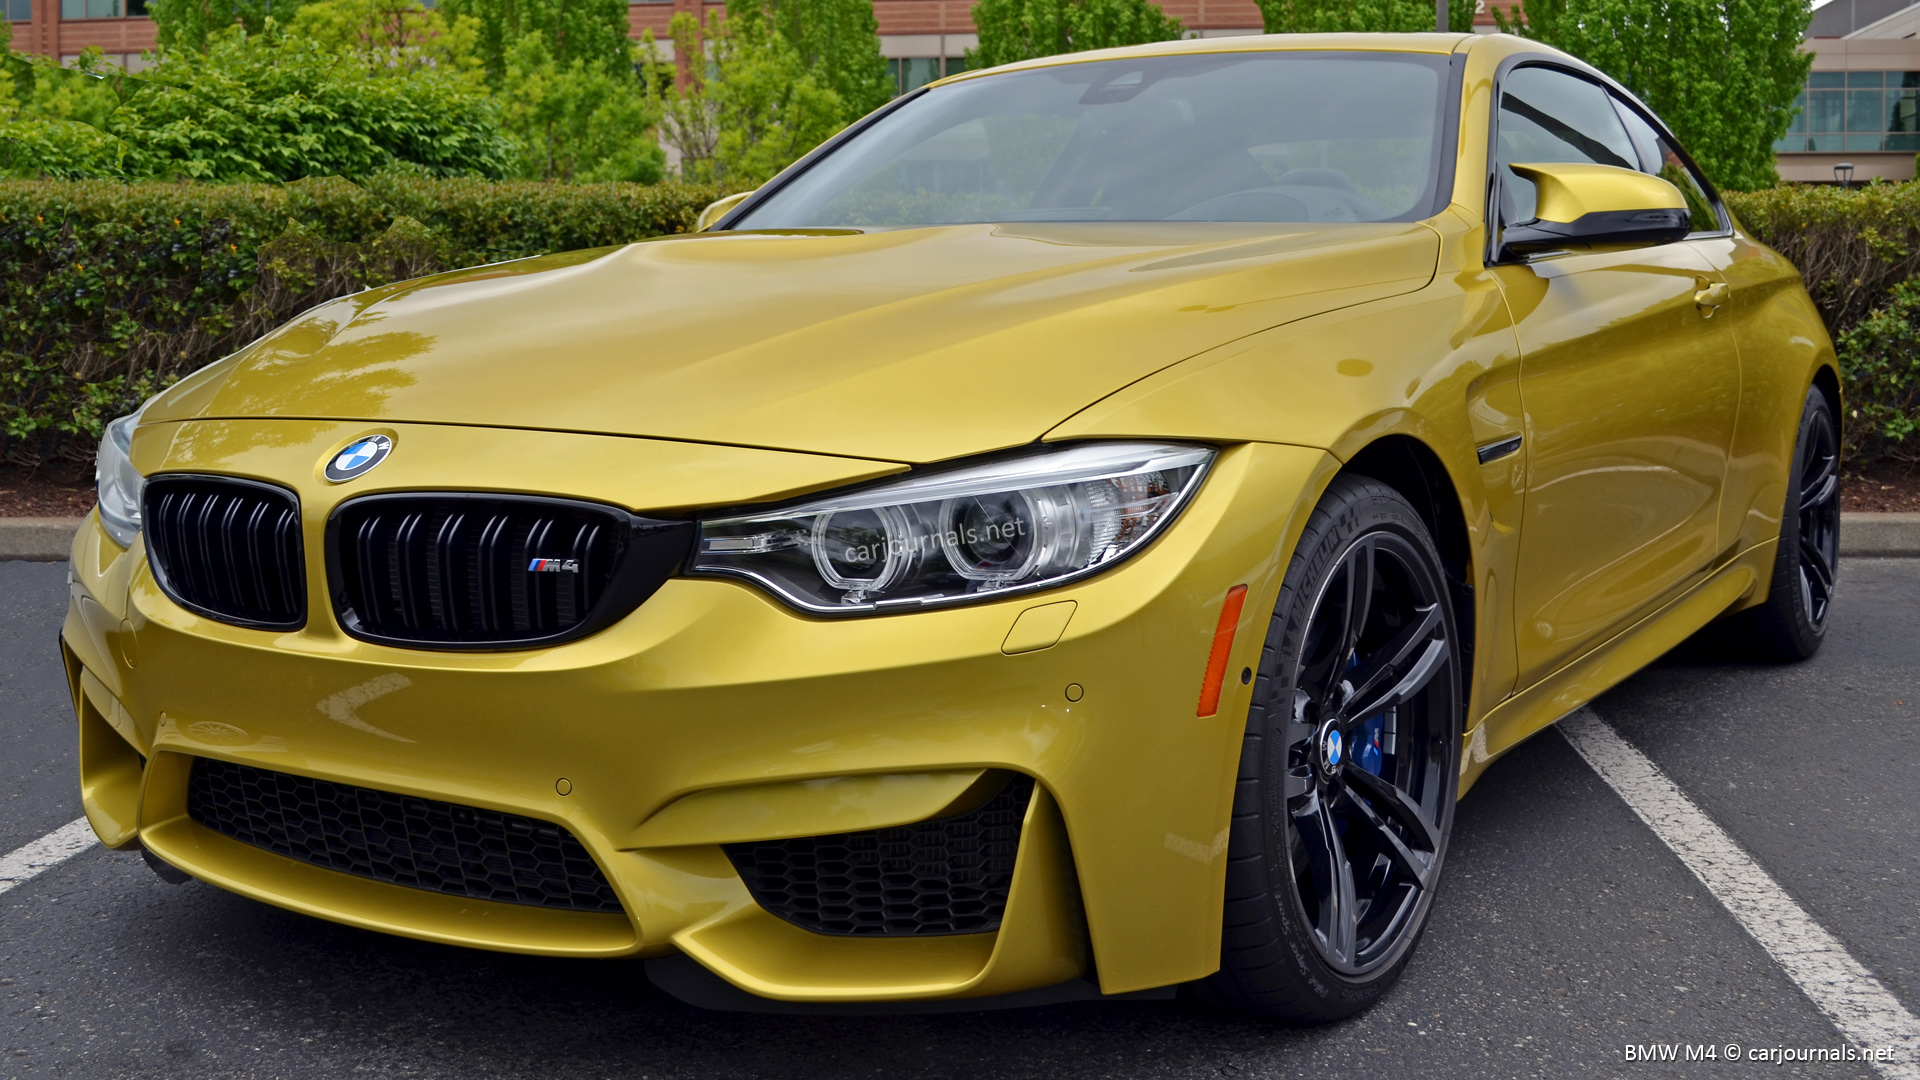 Bmw M4 Hd Wallpaper Car Journals